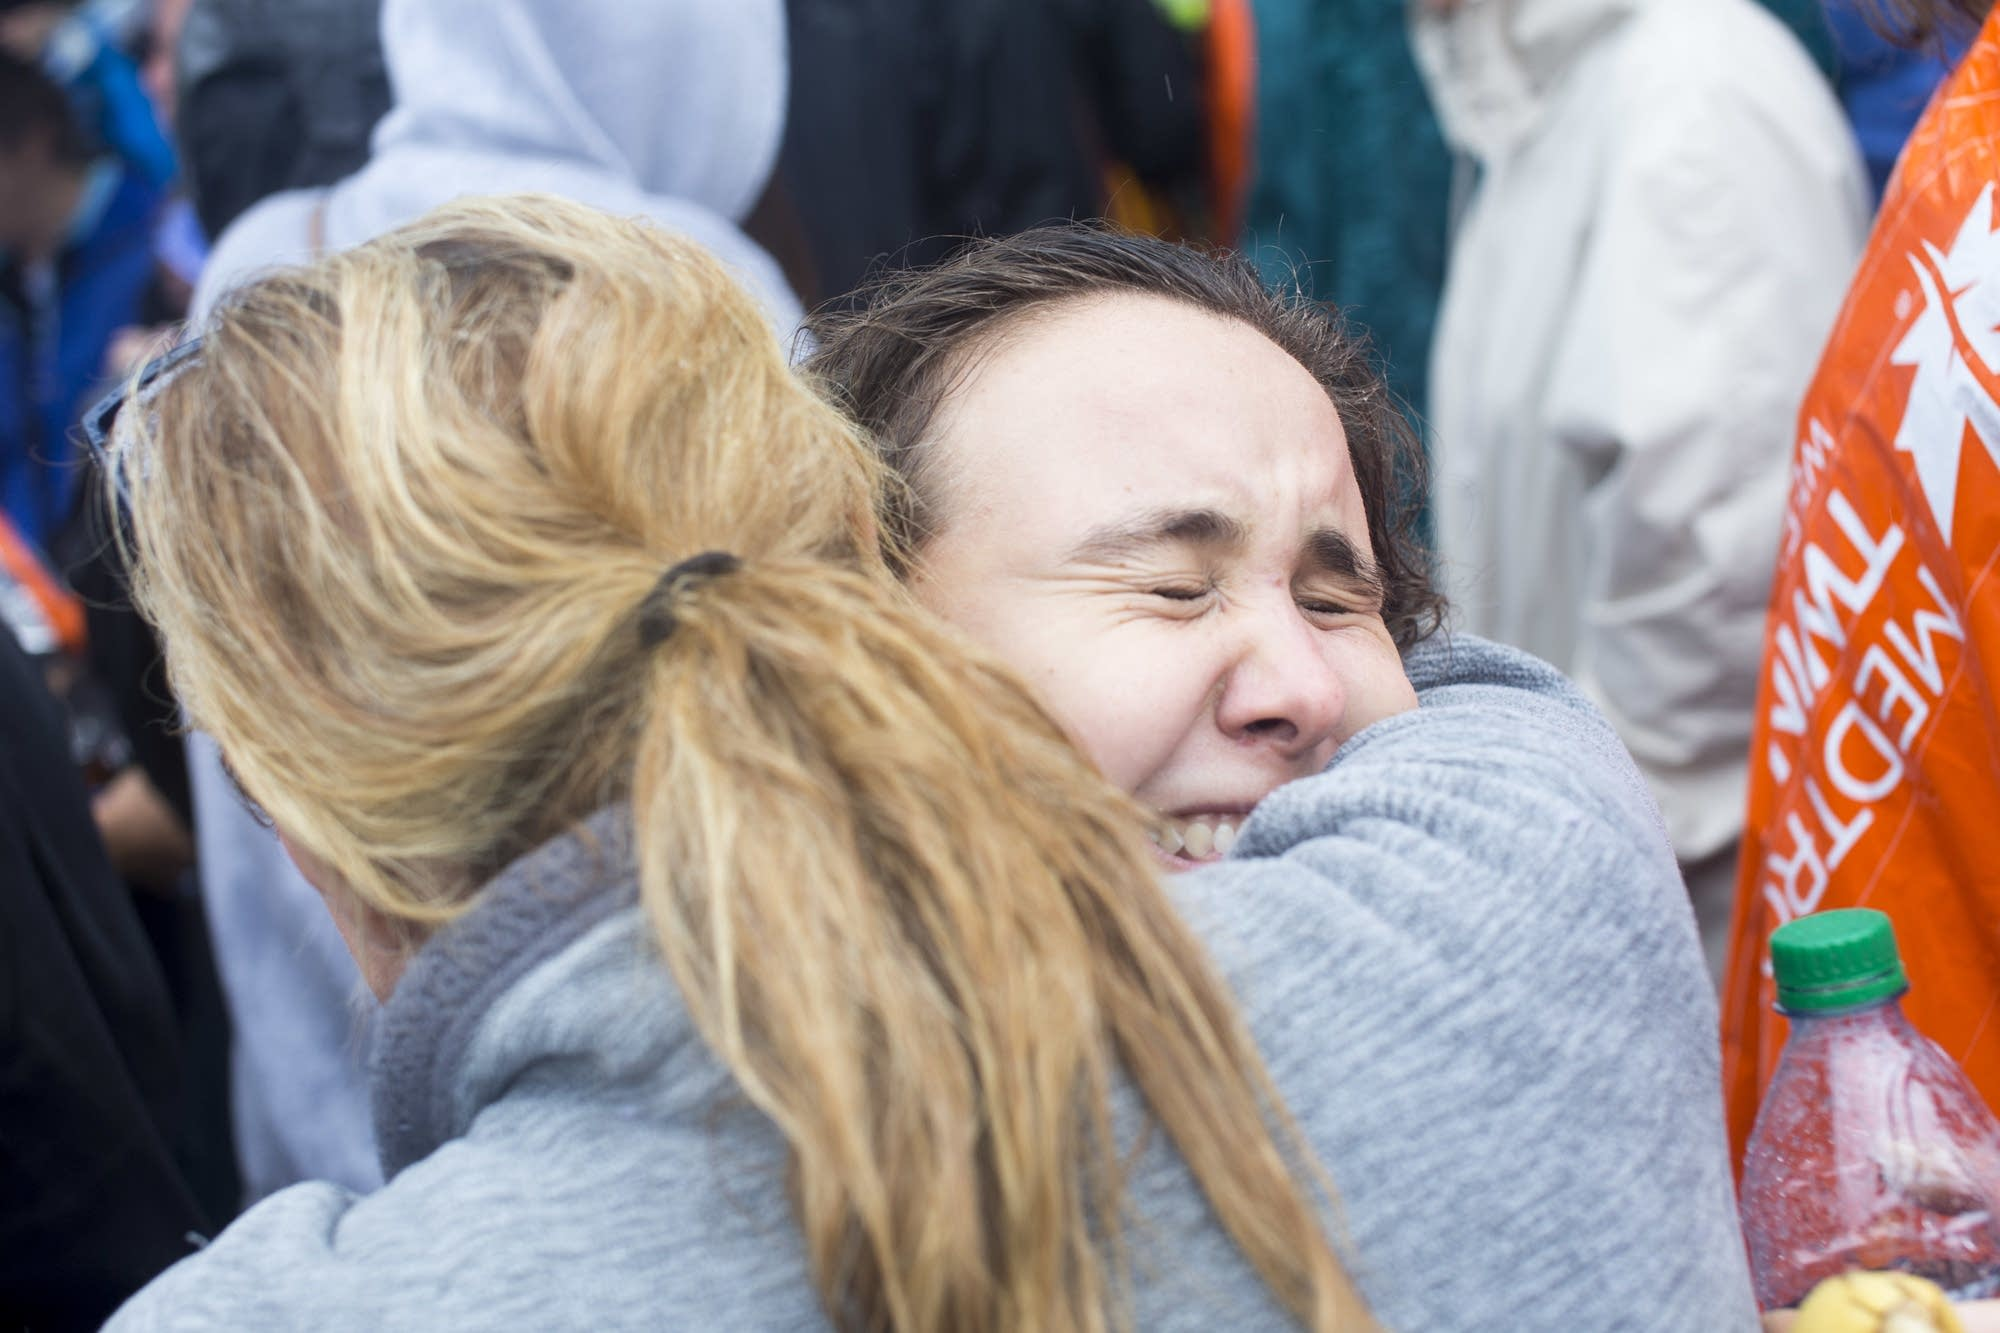 Rachel Hastings hugs her mother after the race.